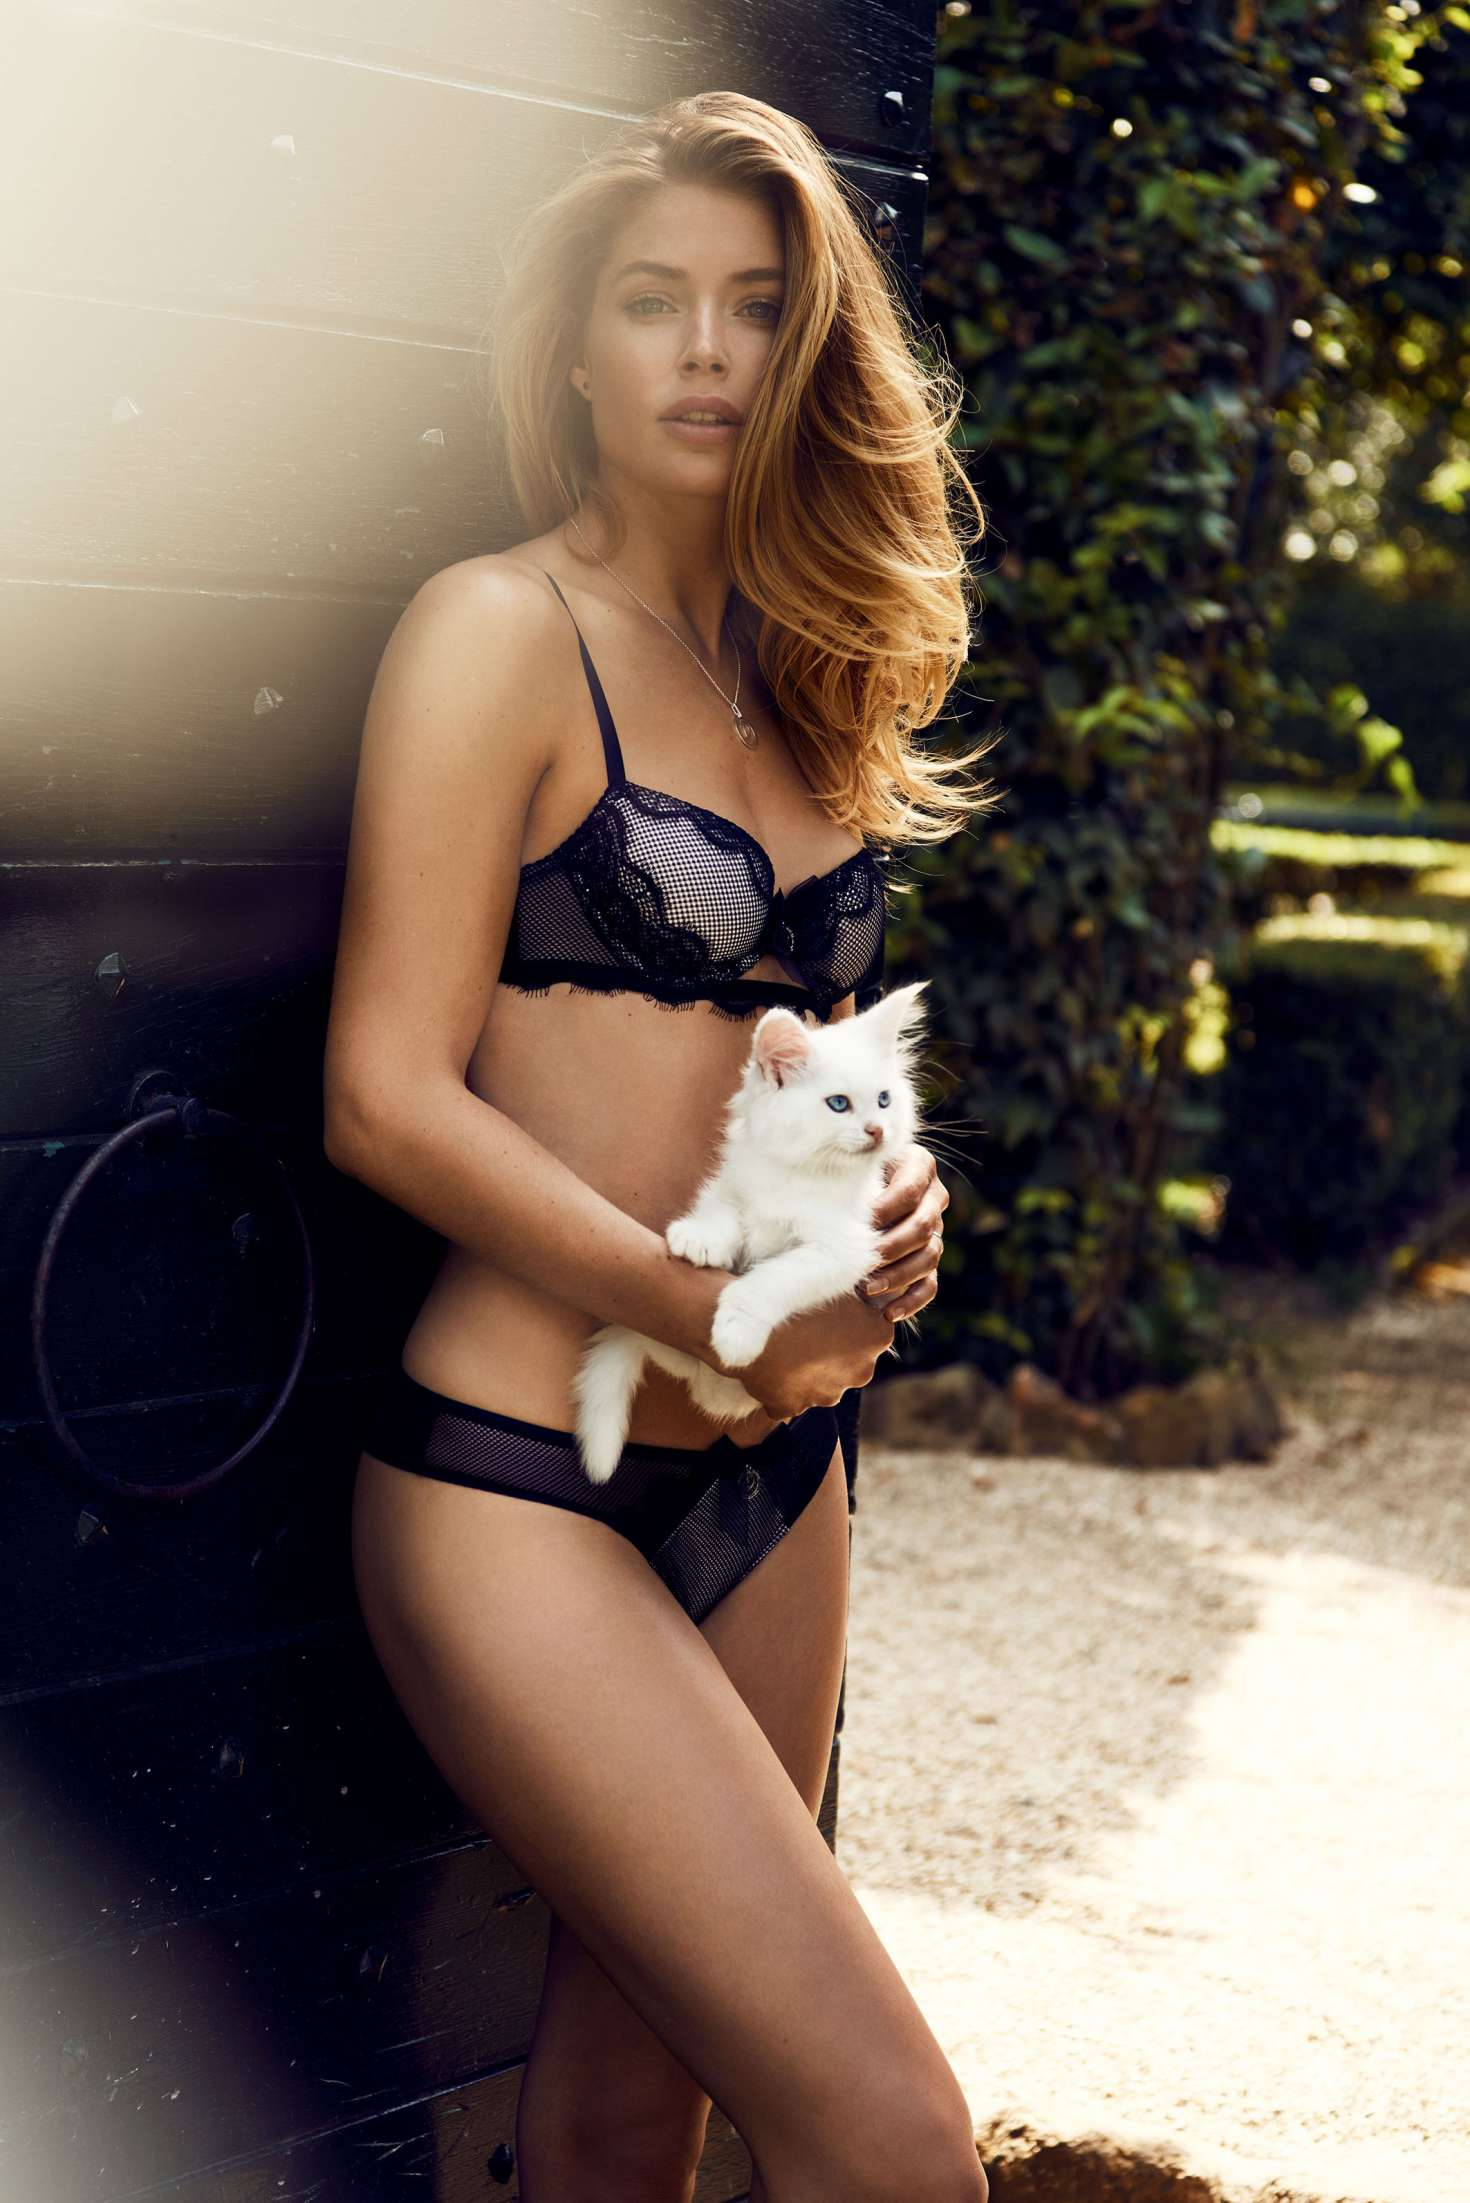 Doutzen Kroes – Hunkemoller Photoshoot 2016   Doutzen-Kroes:-Hunkemoller-Photoshoot-2016--22